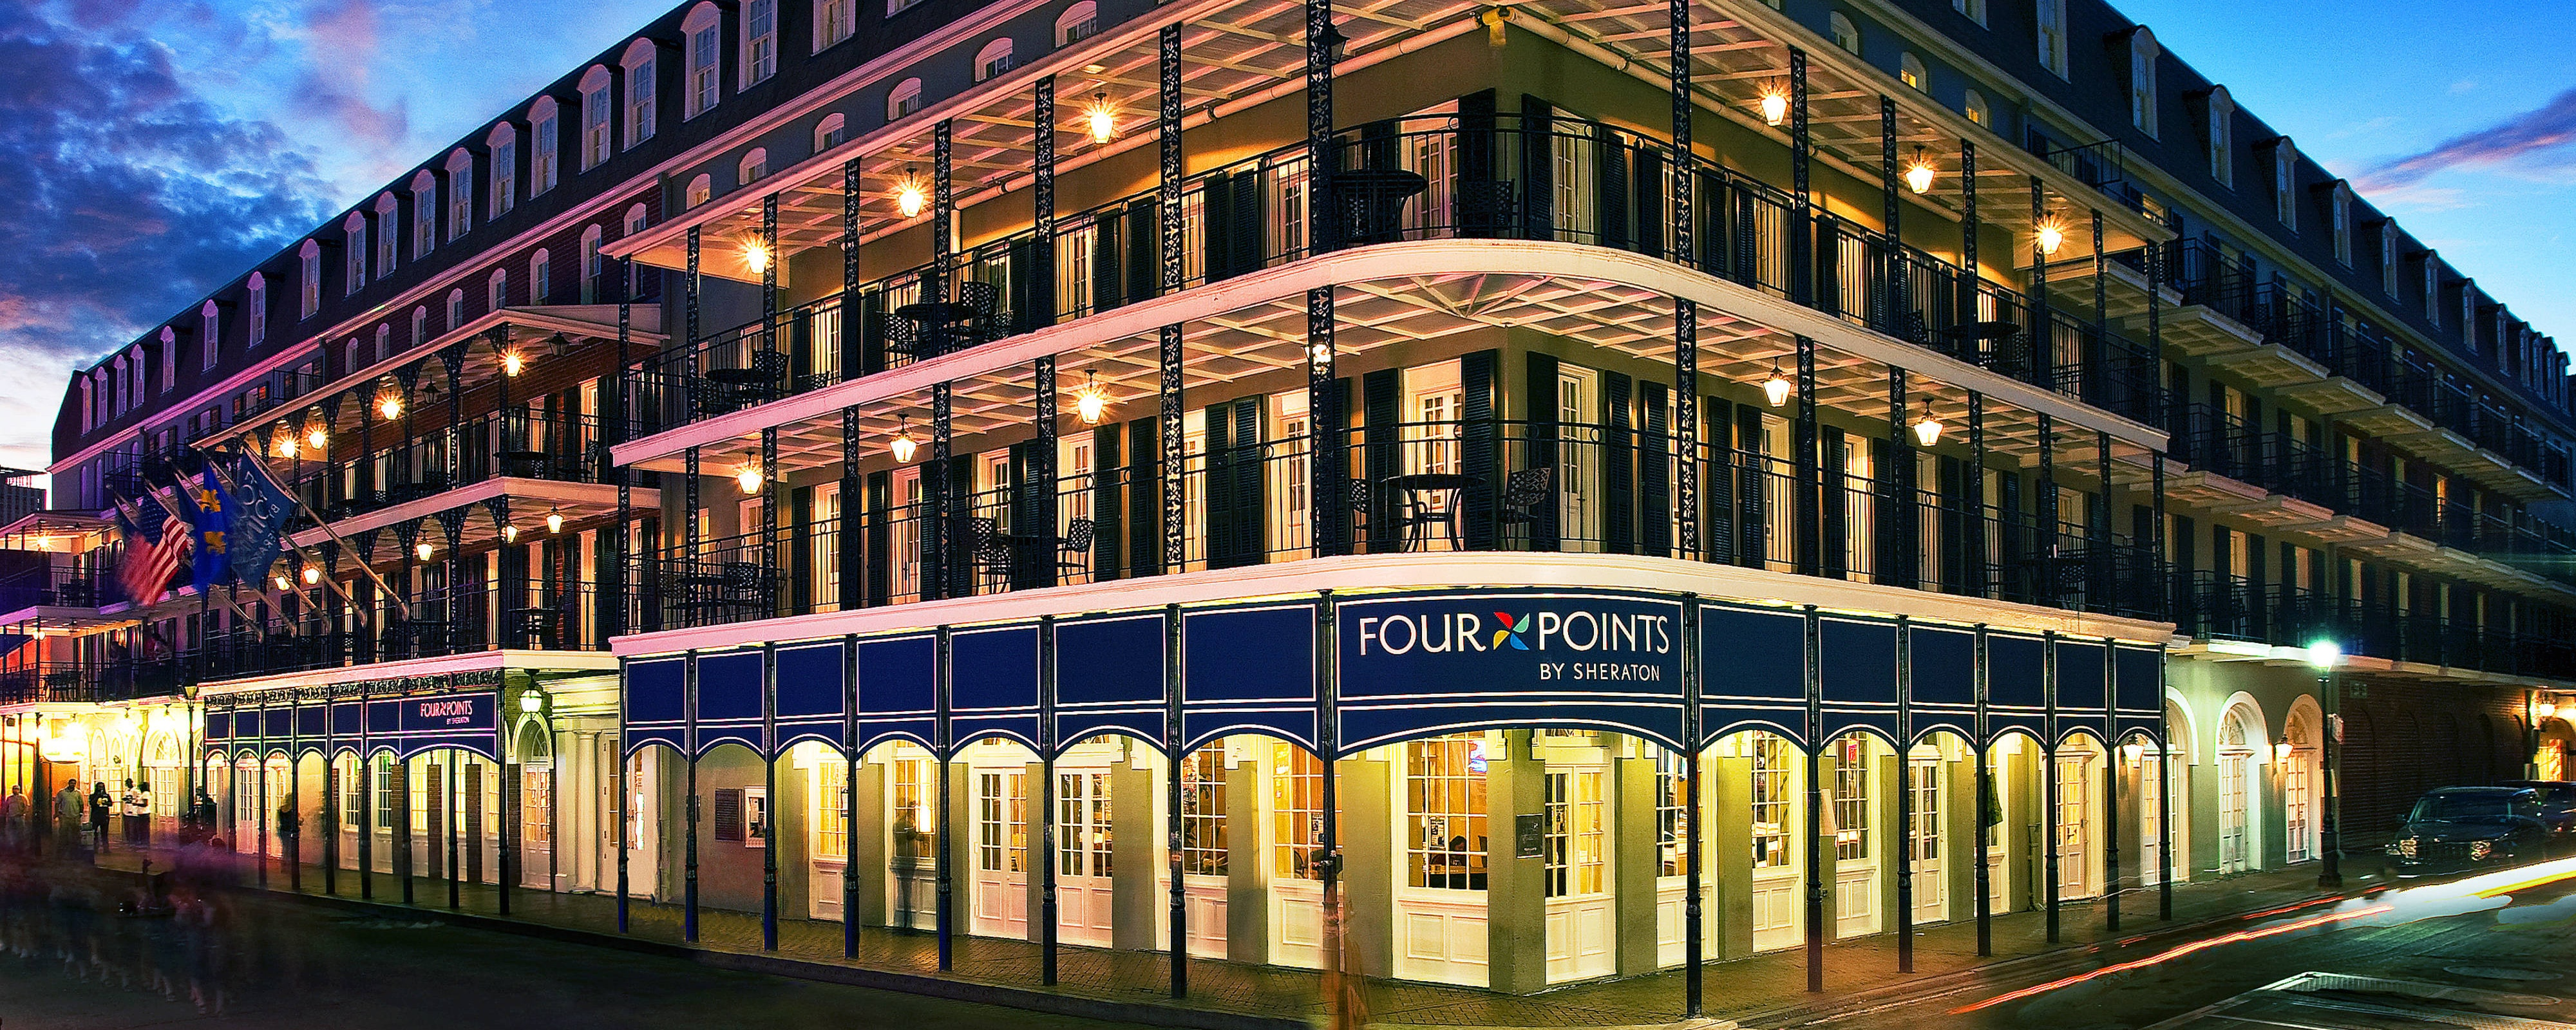 French Quarter New Orleans Hotel Four Points By Sheraton French